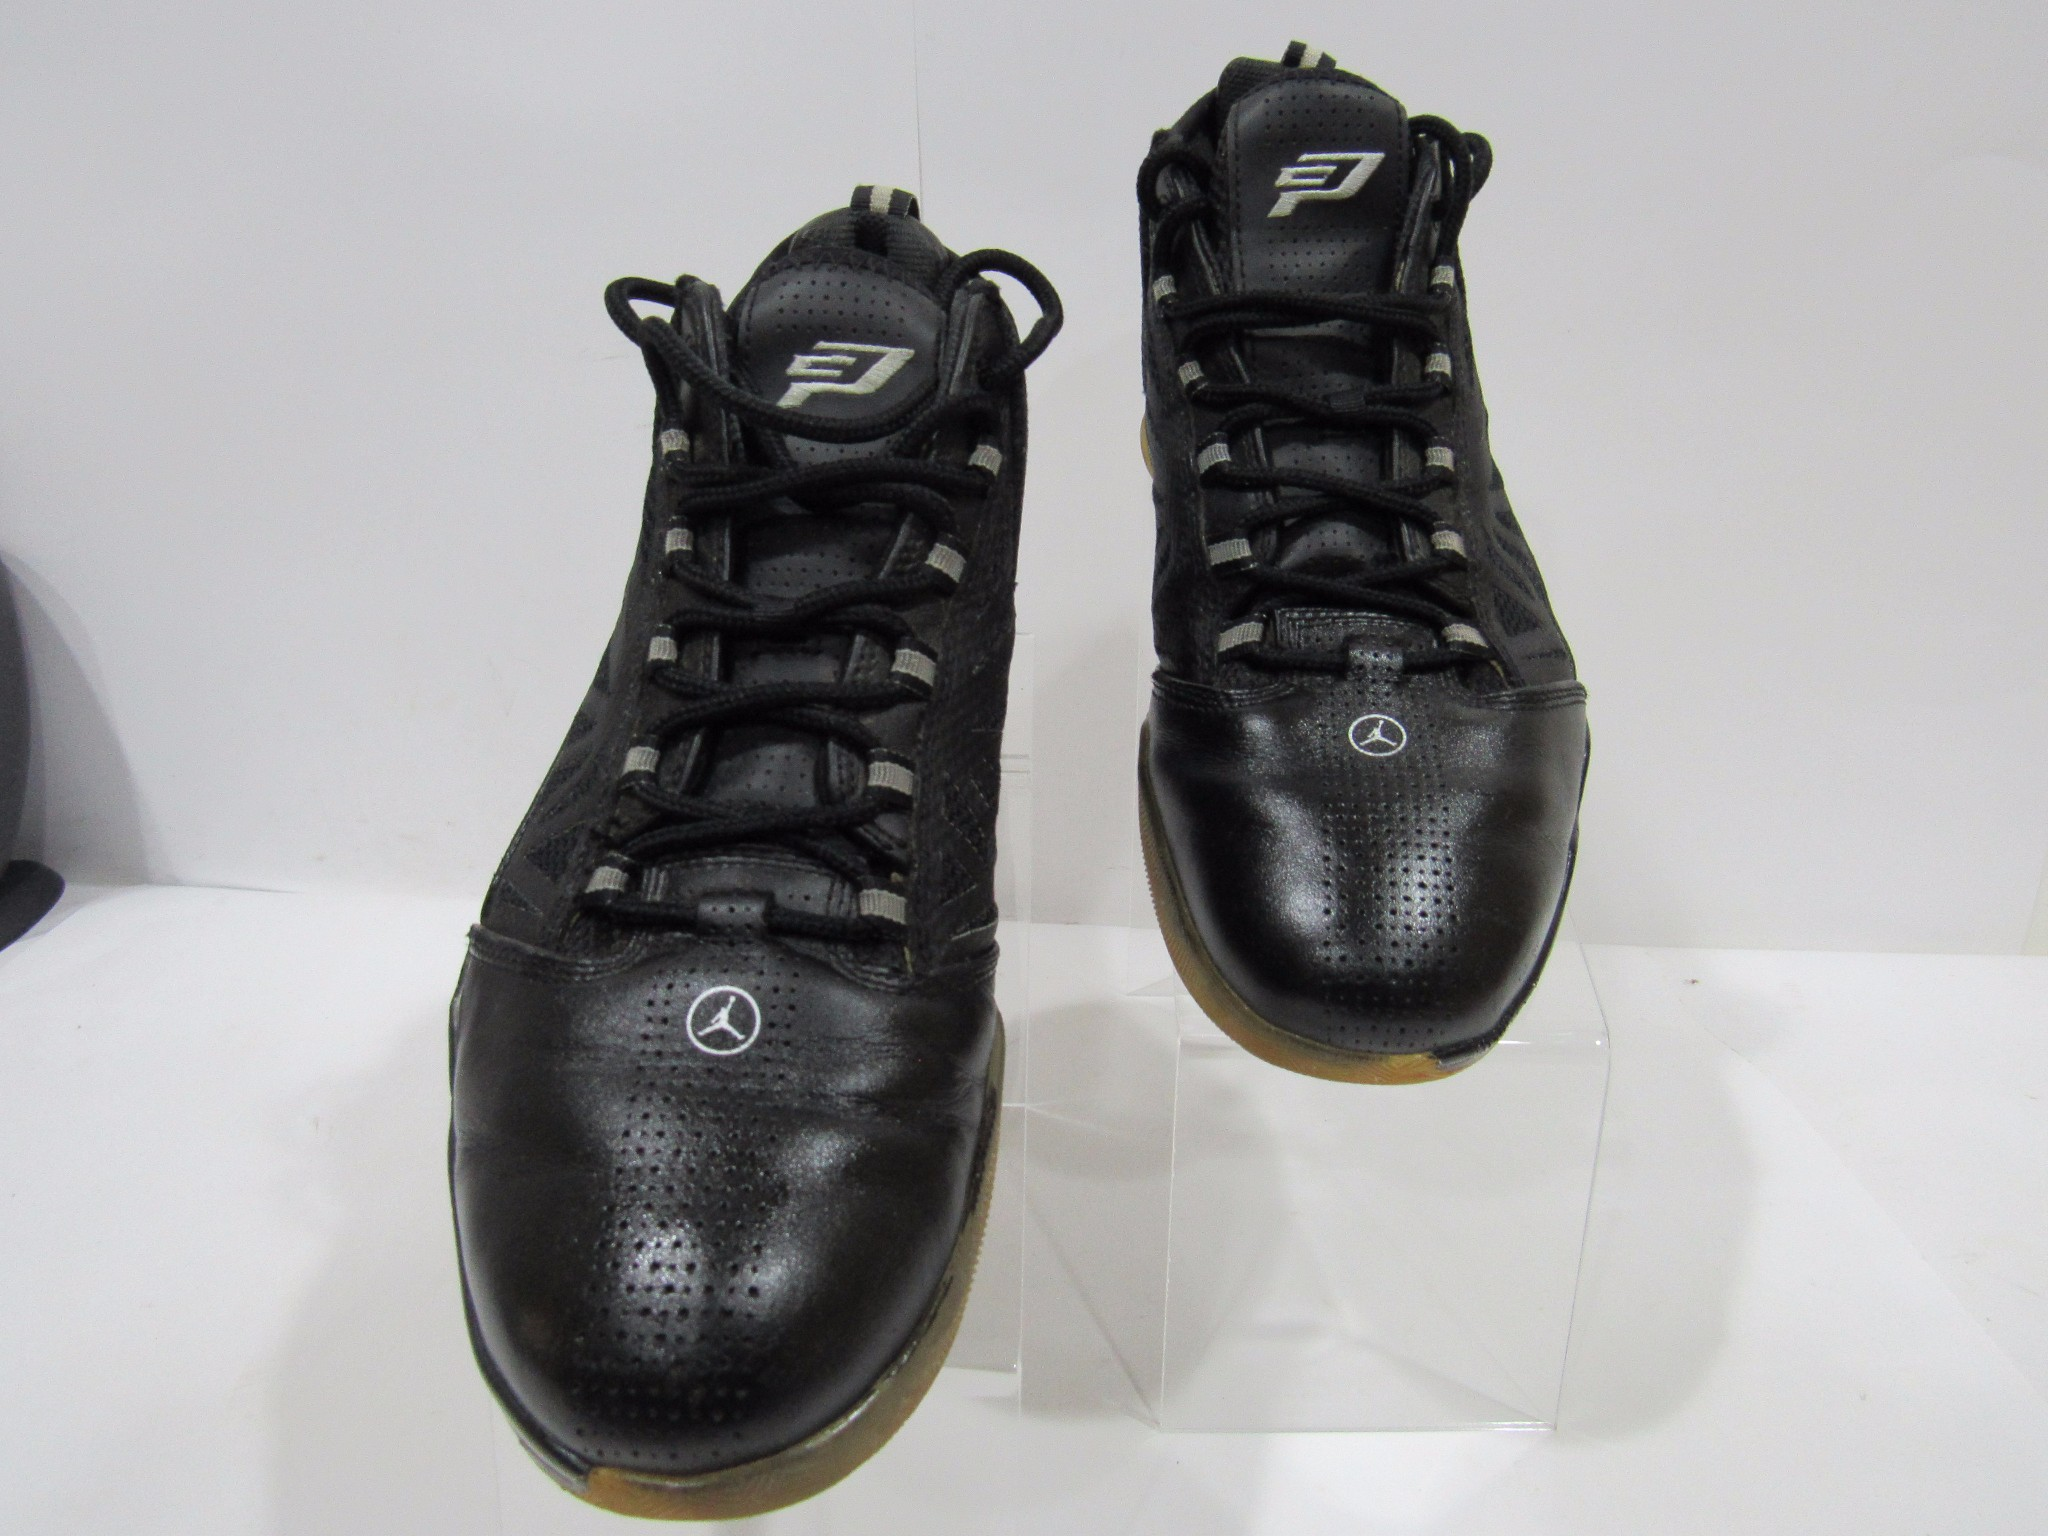 """new style 1c128 ee174 HIGH QUALITY PRODUCTS. FAST SHIPPING. HASSLE FREE. KizoGP. YOUR SOLE  PROVIDER. Nike Air Jordan CP3 IV Basketball Chris Paul Men Shoes 428821-002  Size 10.5. """""""